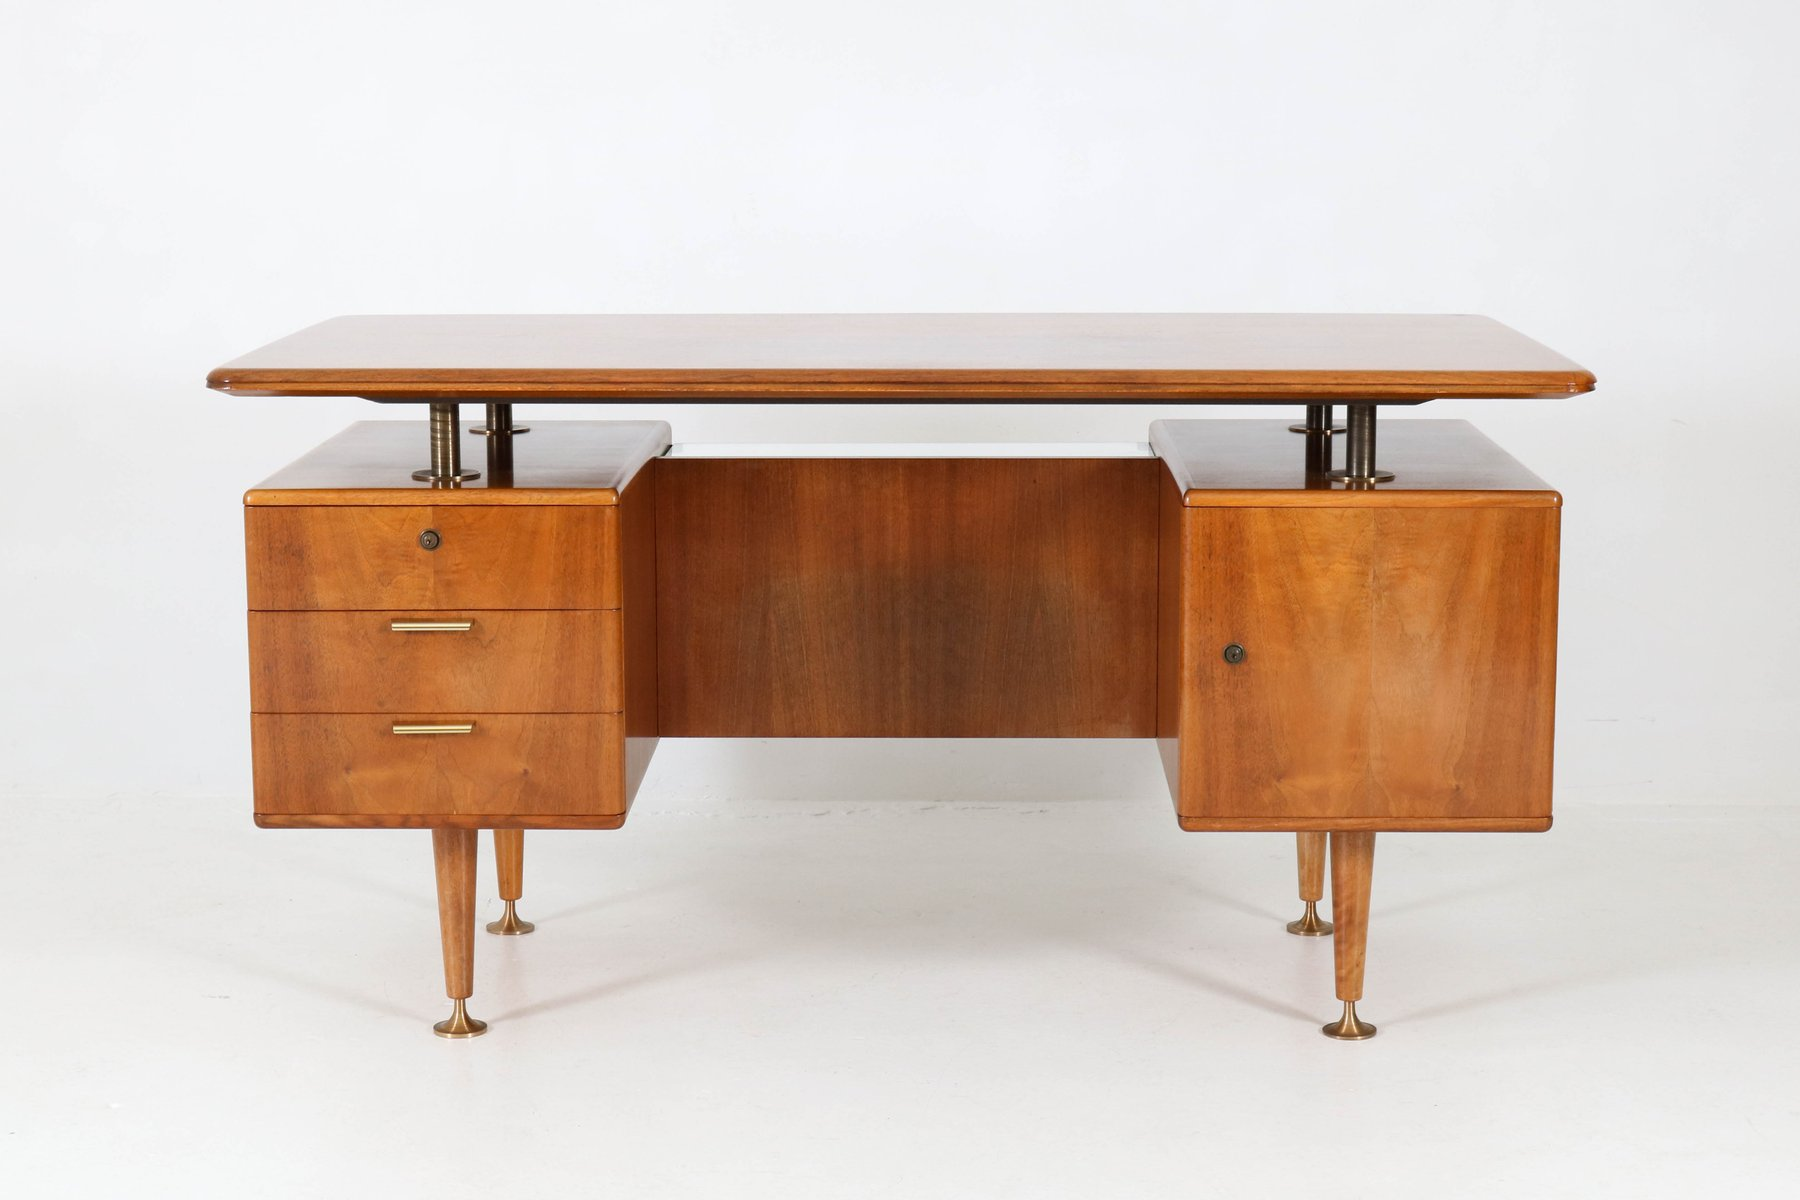 Mid Century Modern Walnut Desk By Aa Patijn For Poly Z, 1960S